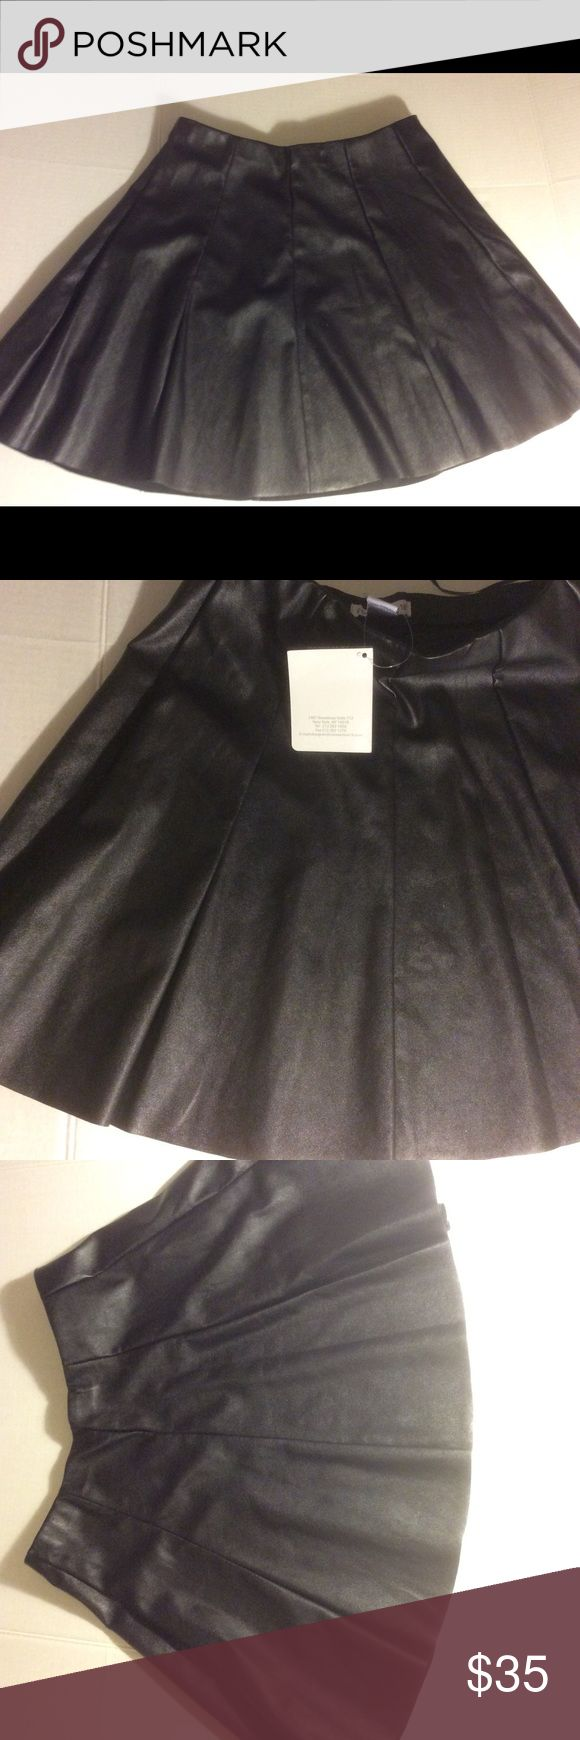 """NWT Connection 18 Faux leather Skater Skirt Size S Dear Poshers, this listing is for a super cute Faux leather skirt. About 12 1/2"""" across and length about 16 1/4"""". 95% Polyester and 5% spandex. The brand is Connection 18. Great for upcoming holidays. Elastic band. connection 18 Skirts Circle & Skater"""